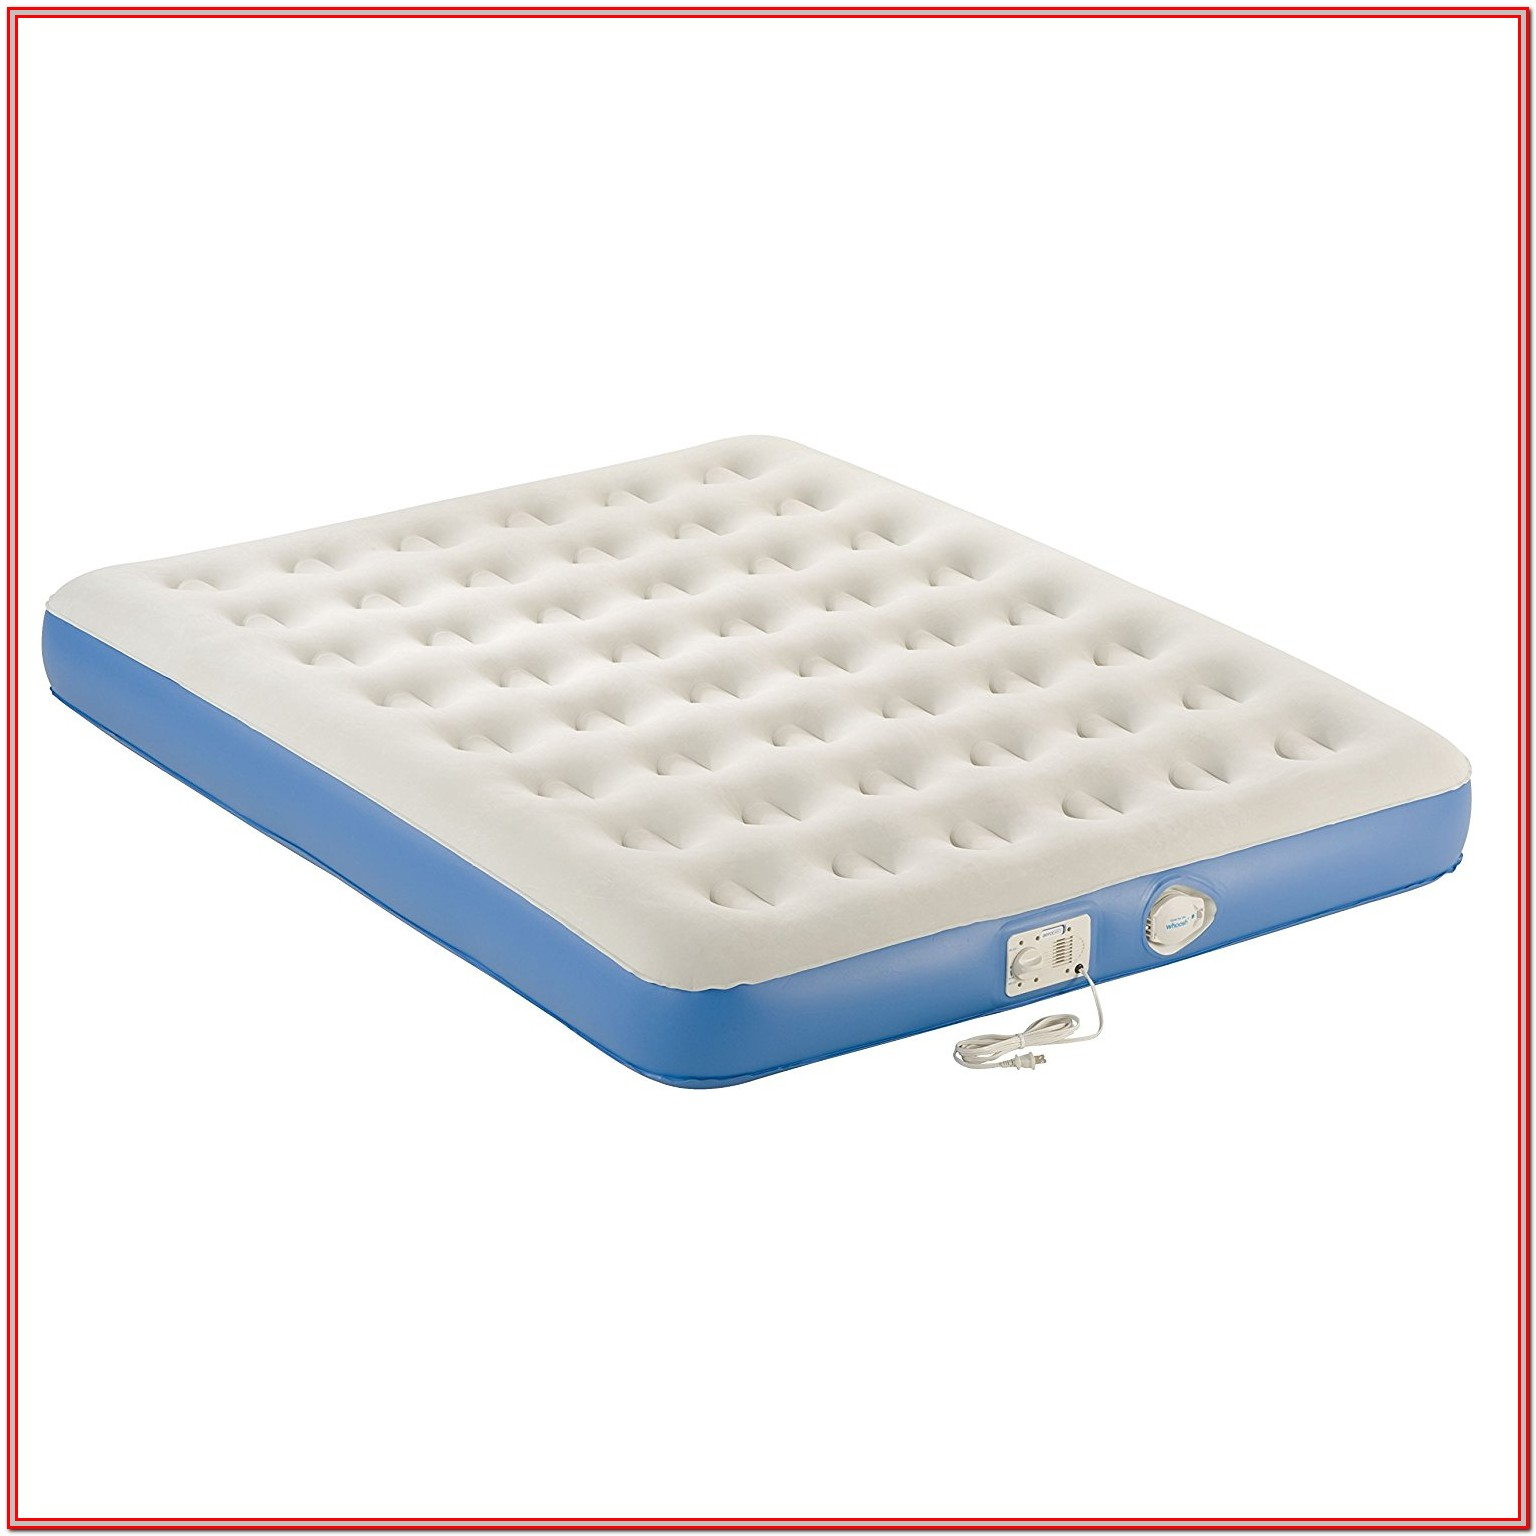 Aerobed Queen Size Air Mattress